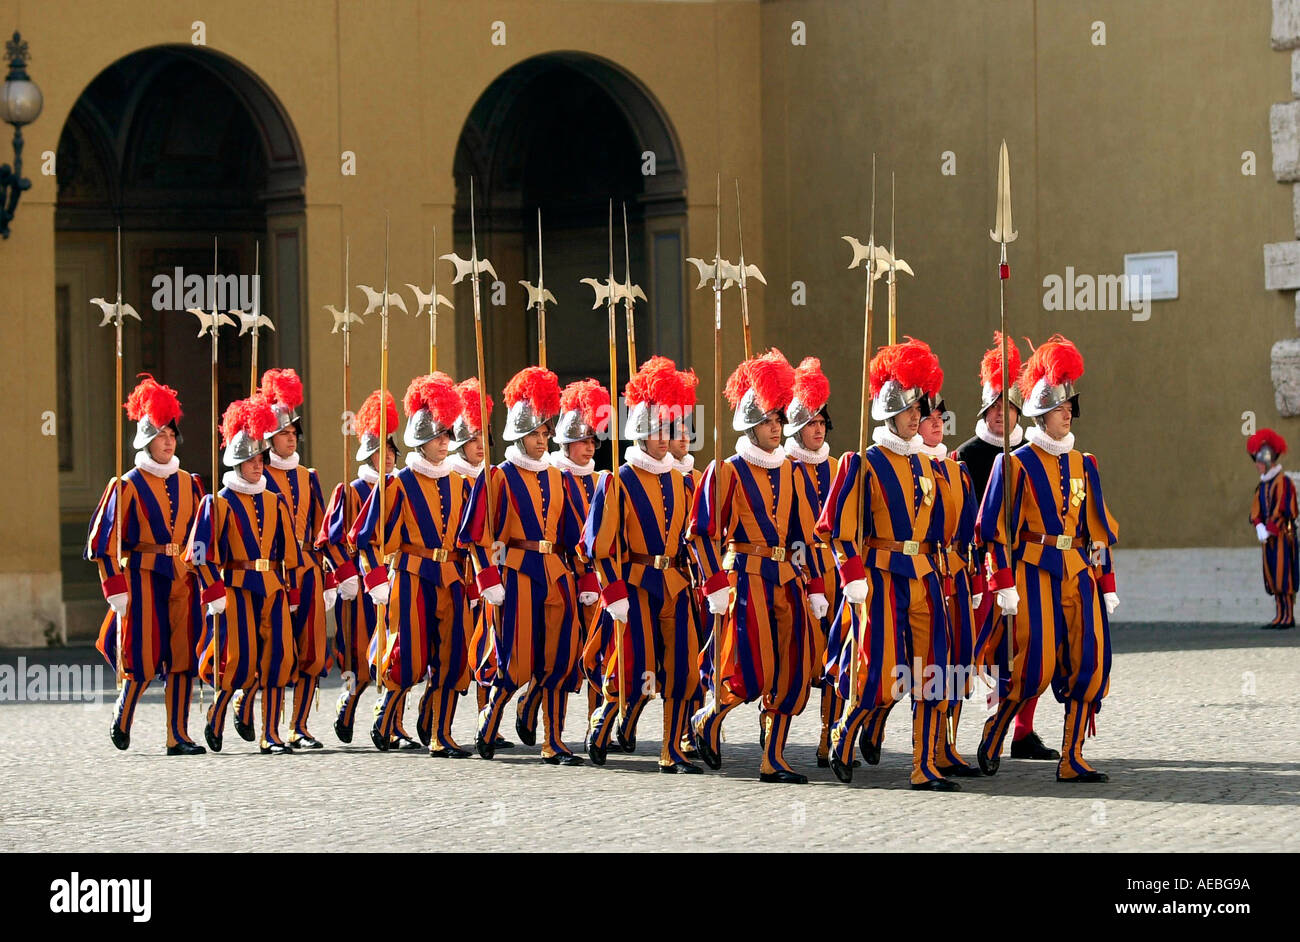 SWISS GUARDS IN PLUMED HELMETS AND STRIPED UNIFORMS AT THE VATICAN CITY Stock Photo